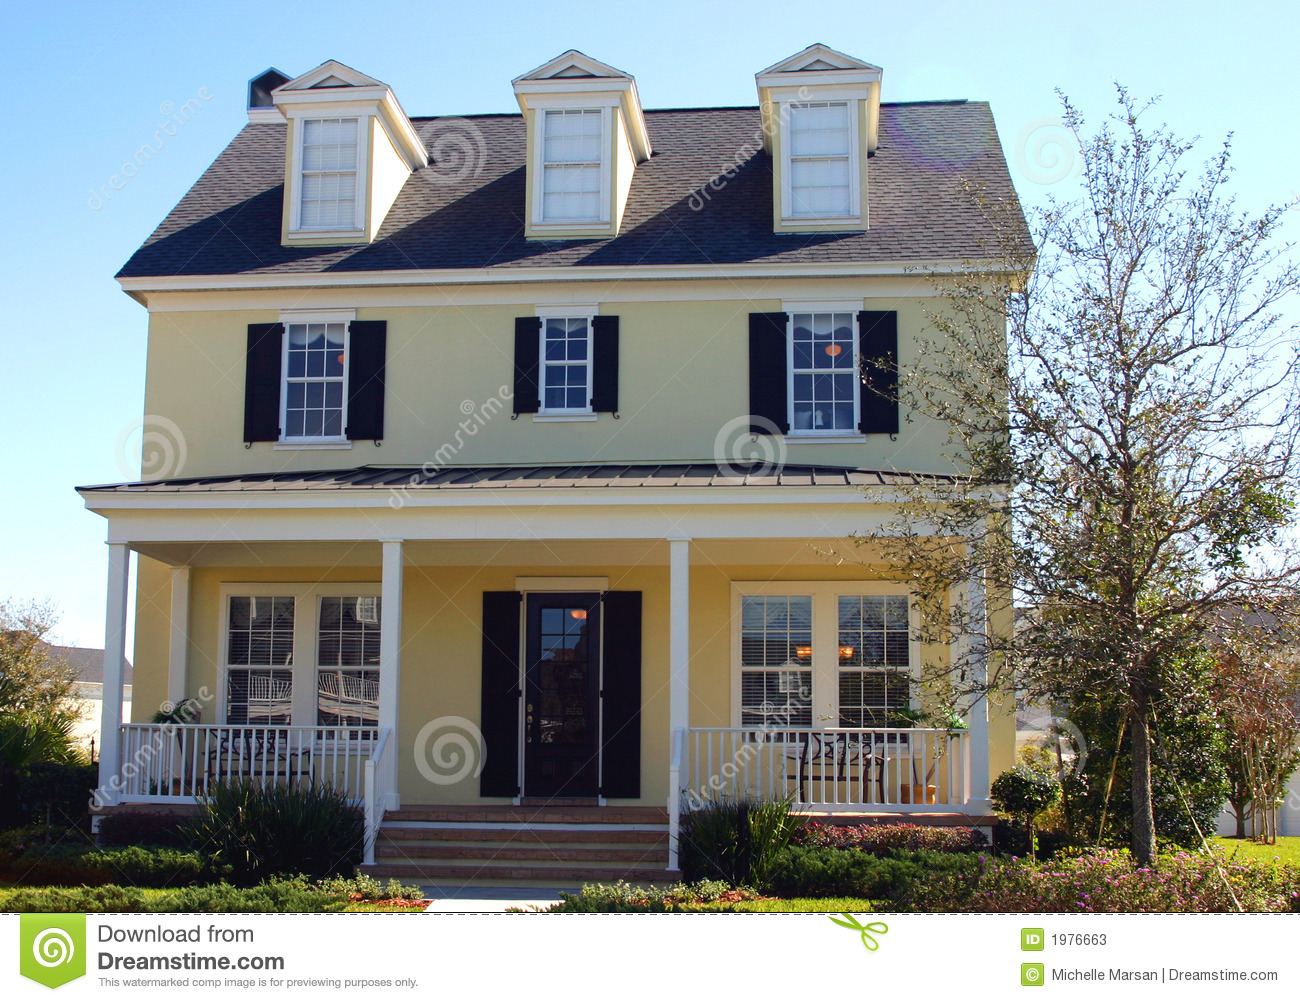 Friday Favorites Fabulous Farmhouse Style moreover Modern Georgian Houses Colors likewise 6c87eddd0261a739 further 1250 Square Feet 3 Bedrooms 2 Bathroom Country House Plans 1 Garage 34125 in addition Garden Storage Sheds. on perfect craftsman style house plans